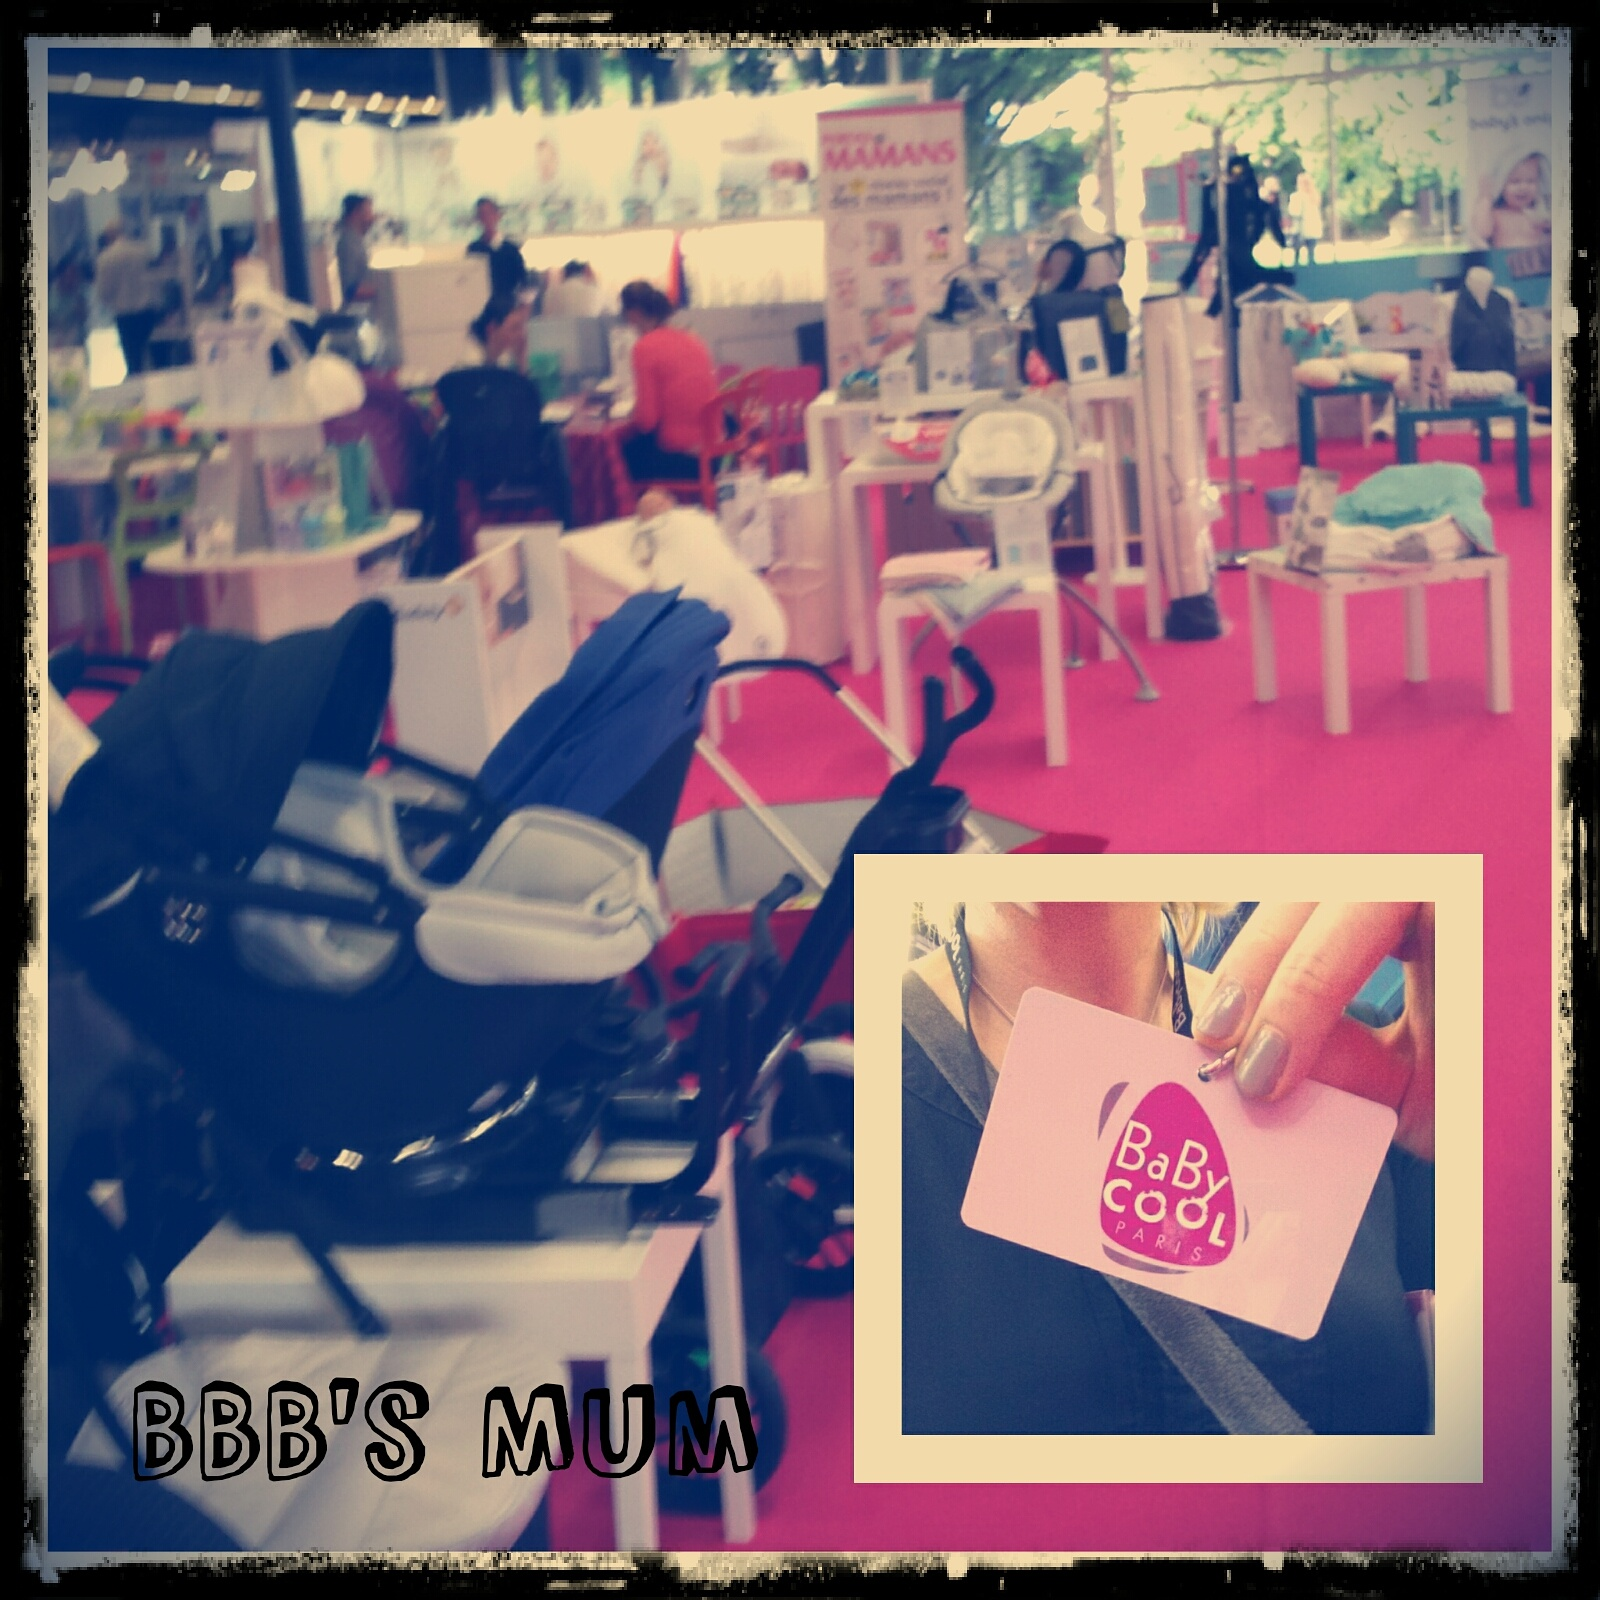 Salon baby cool 2014 bbb 39 s mum for Salon baby cool